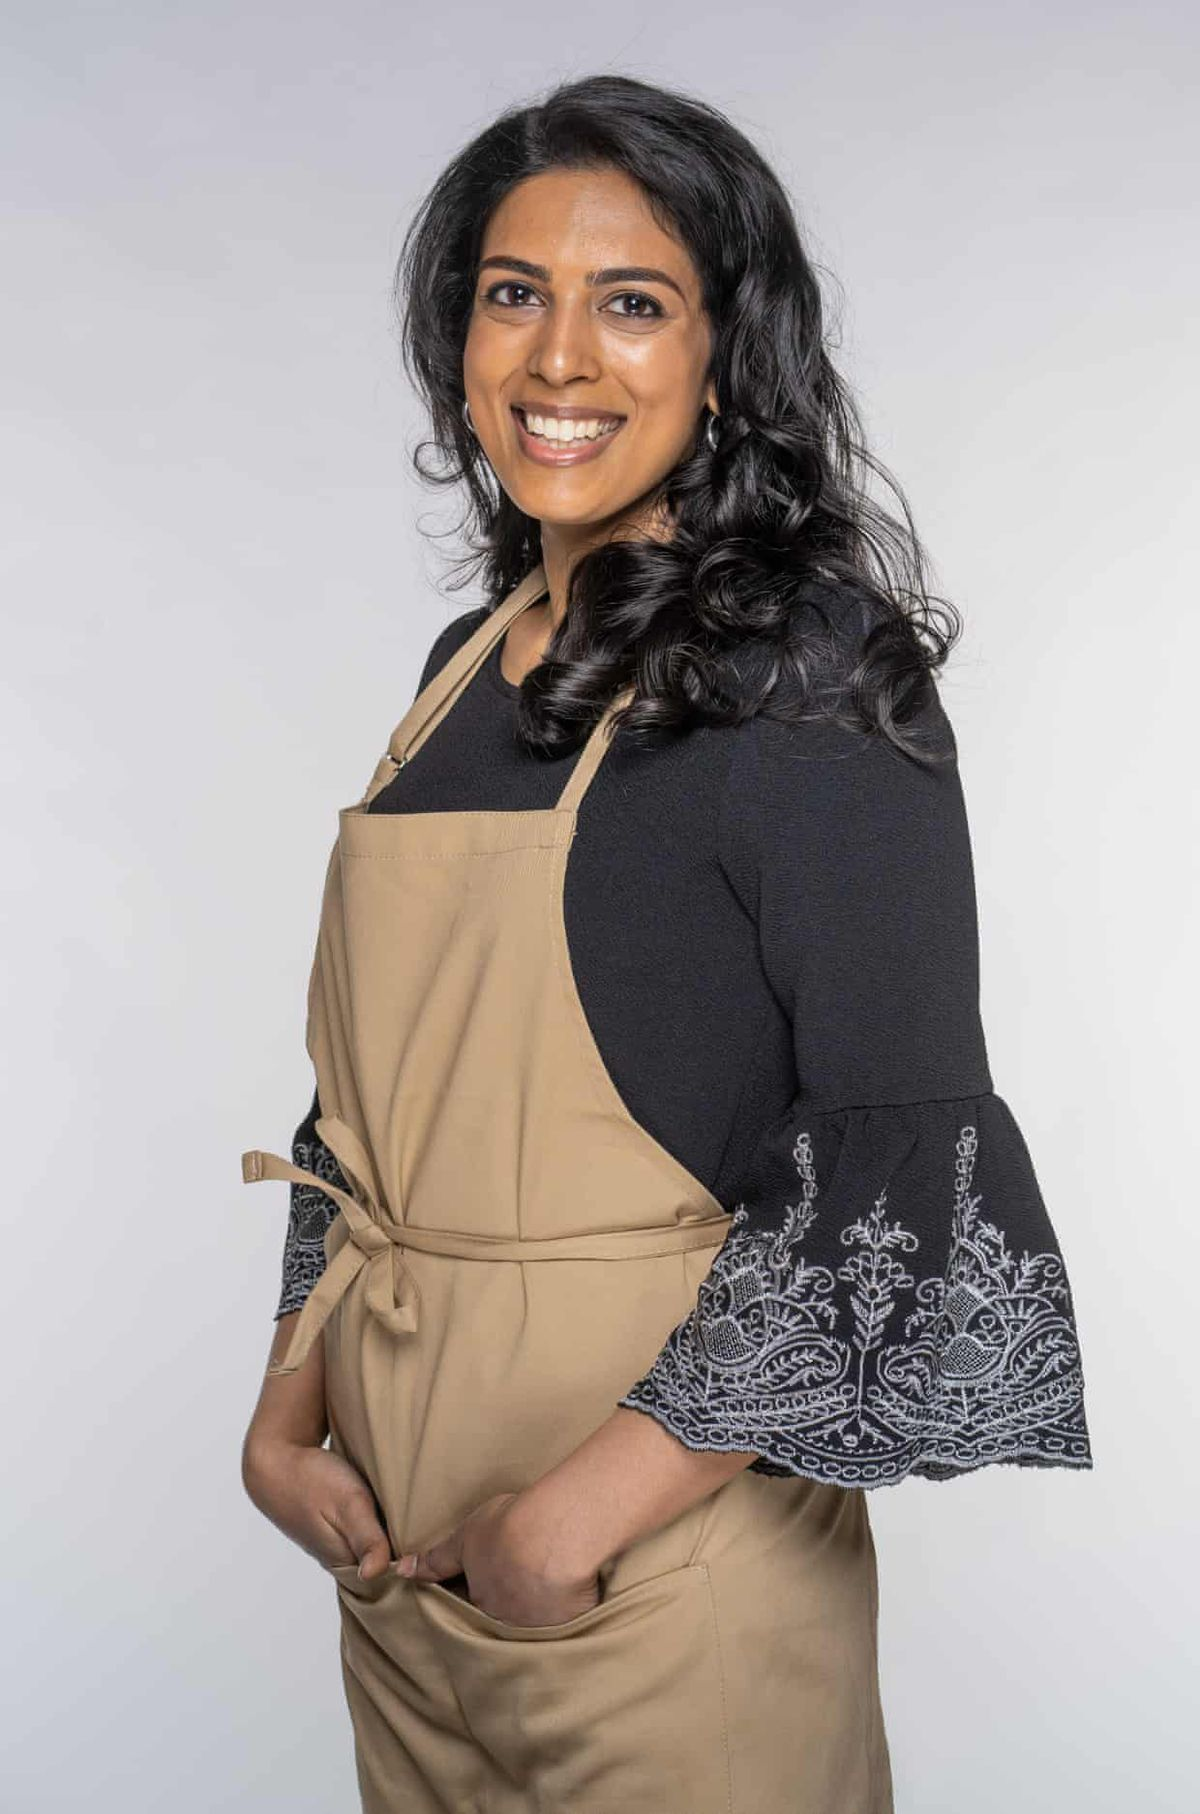 Great British Bake Off 2021 contestant Crystelle, who will compete on GBBO this year